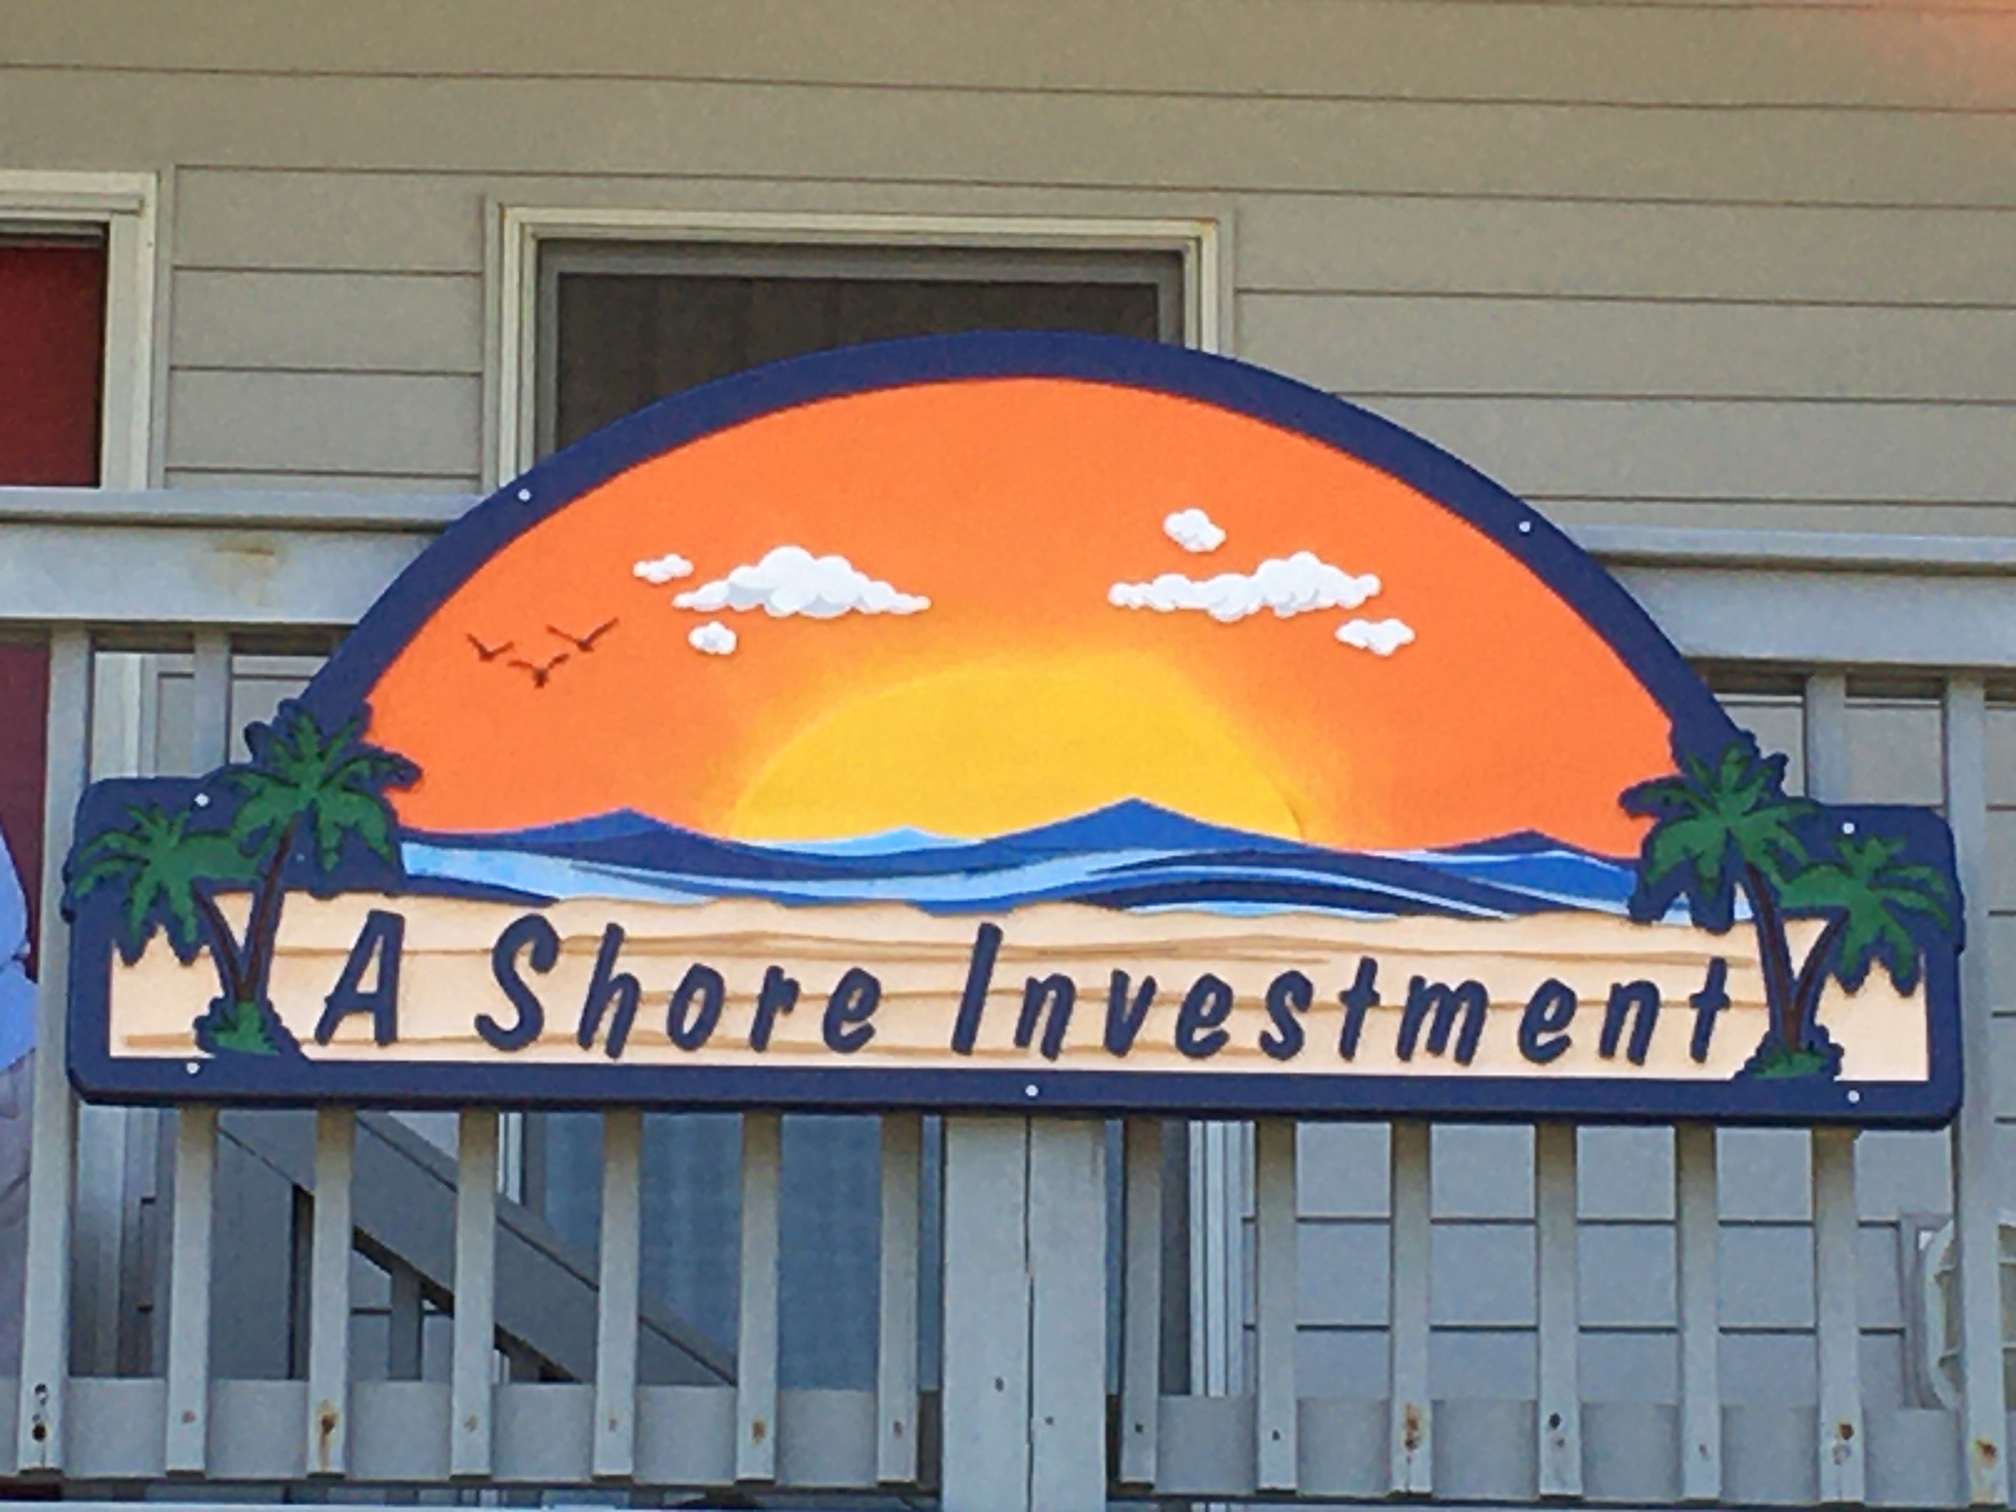 A Shore Investment